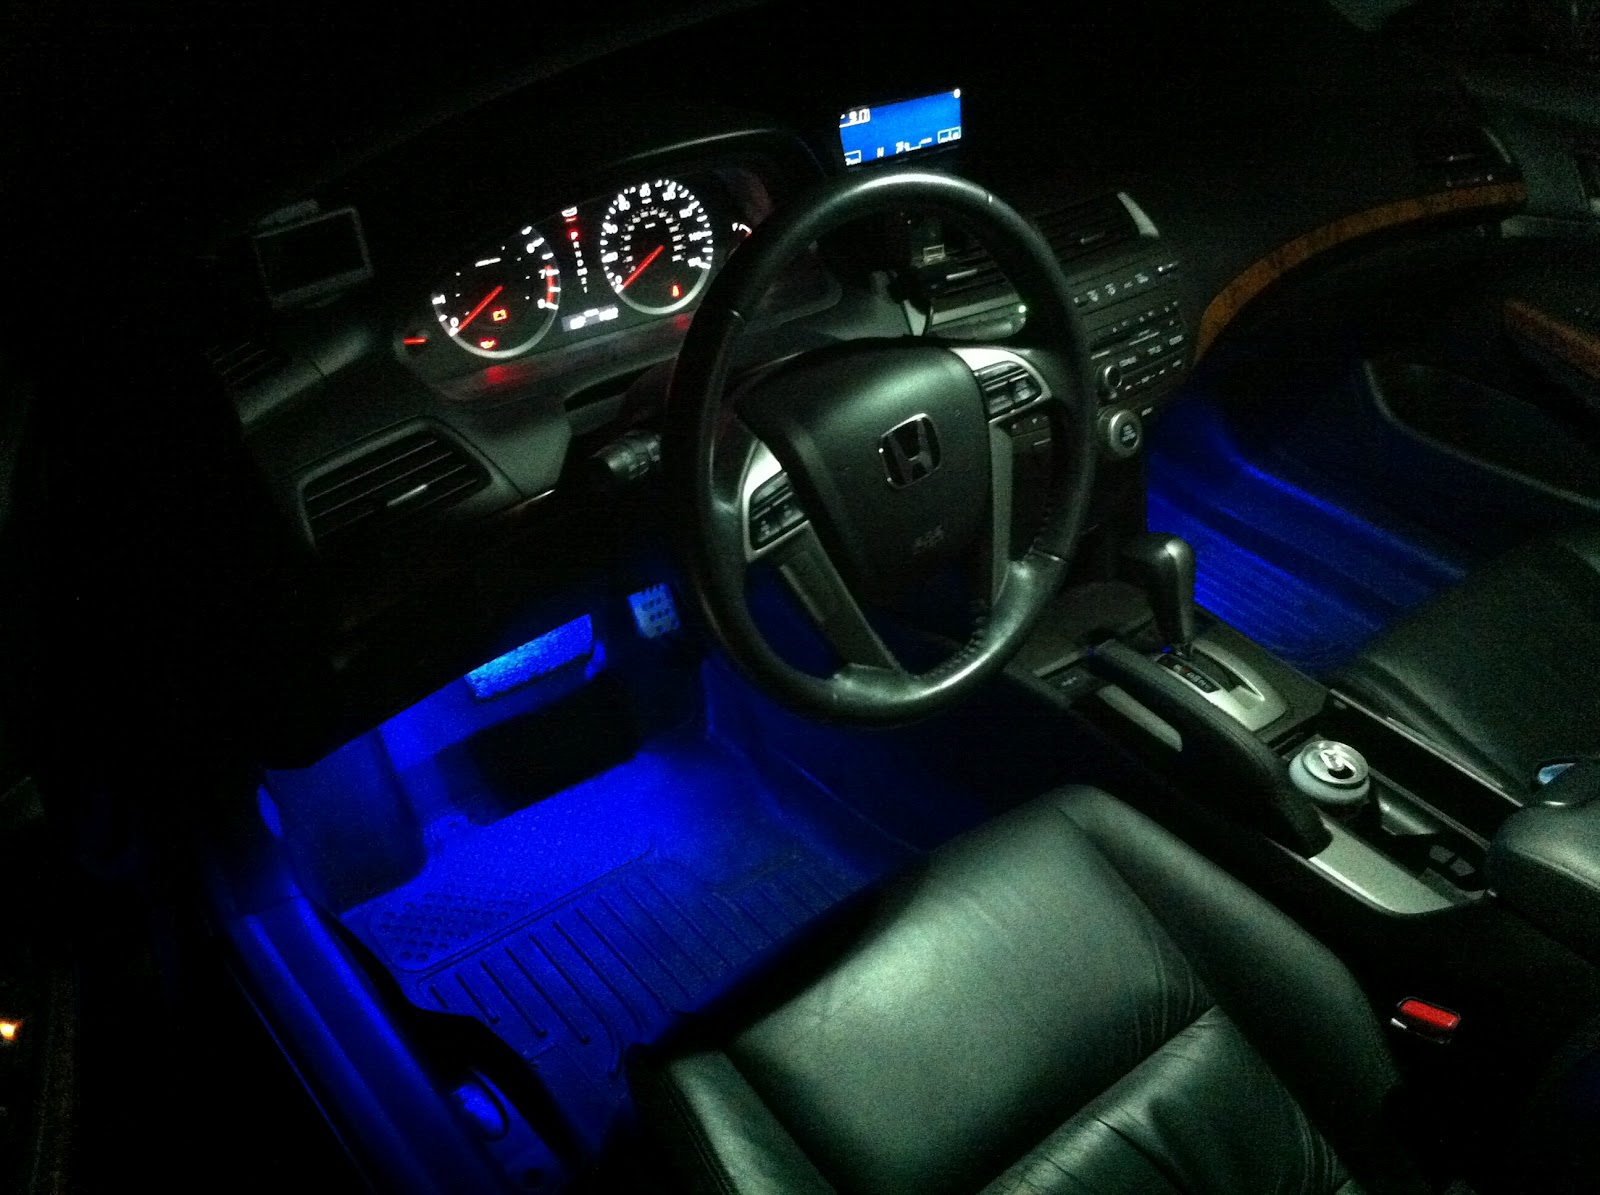 2011 accord inspire build blue led car interior lighting kit 4pc lu sc01. Black Bedroom Furniture Sets. Home Design Ideas